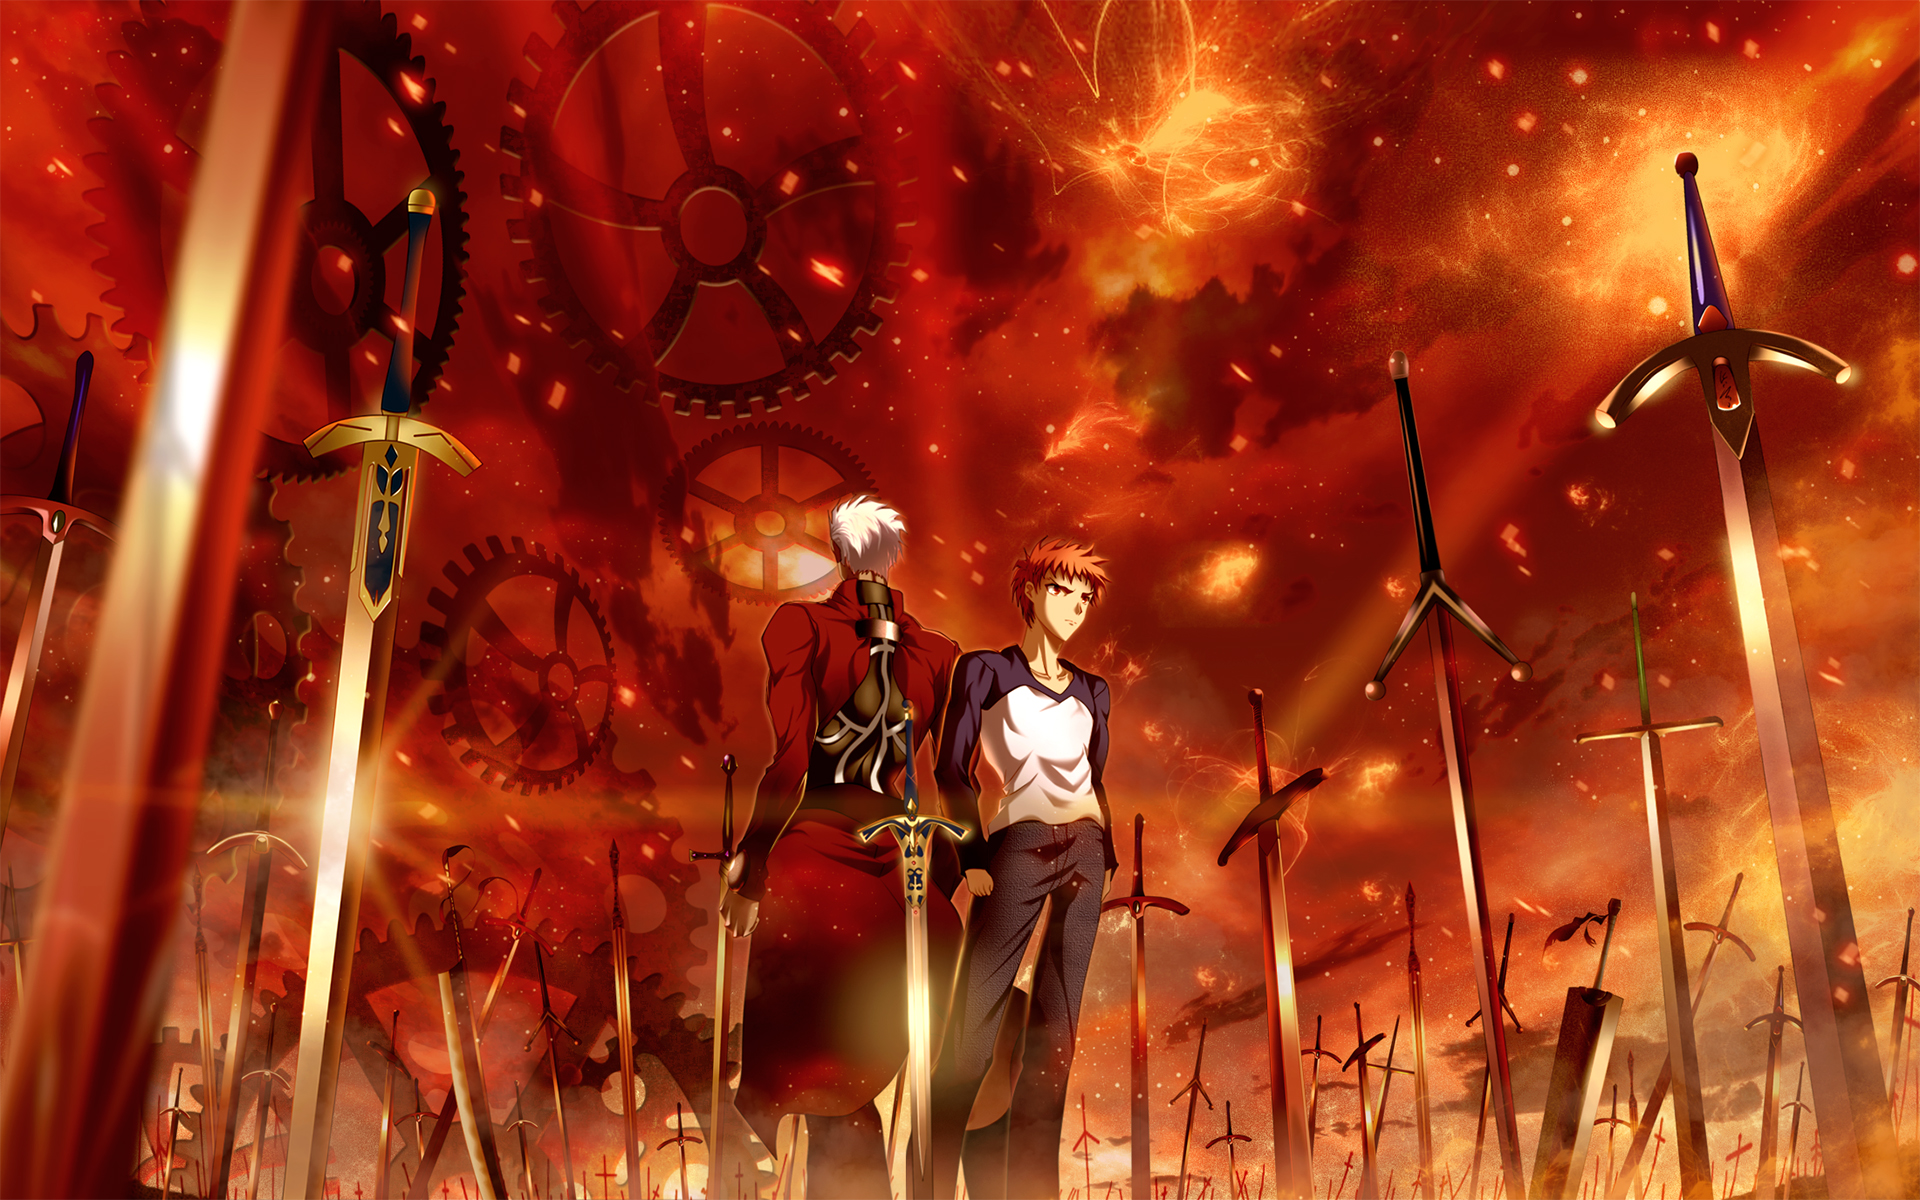 Fate Stay Night FateStay Anime Wallpaper Ultimate Blade Works VN 1920x1200